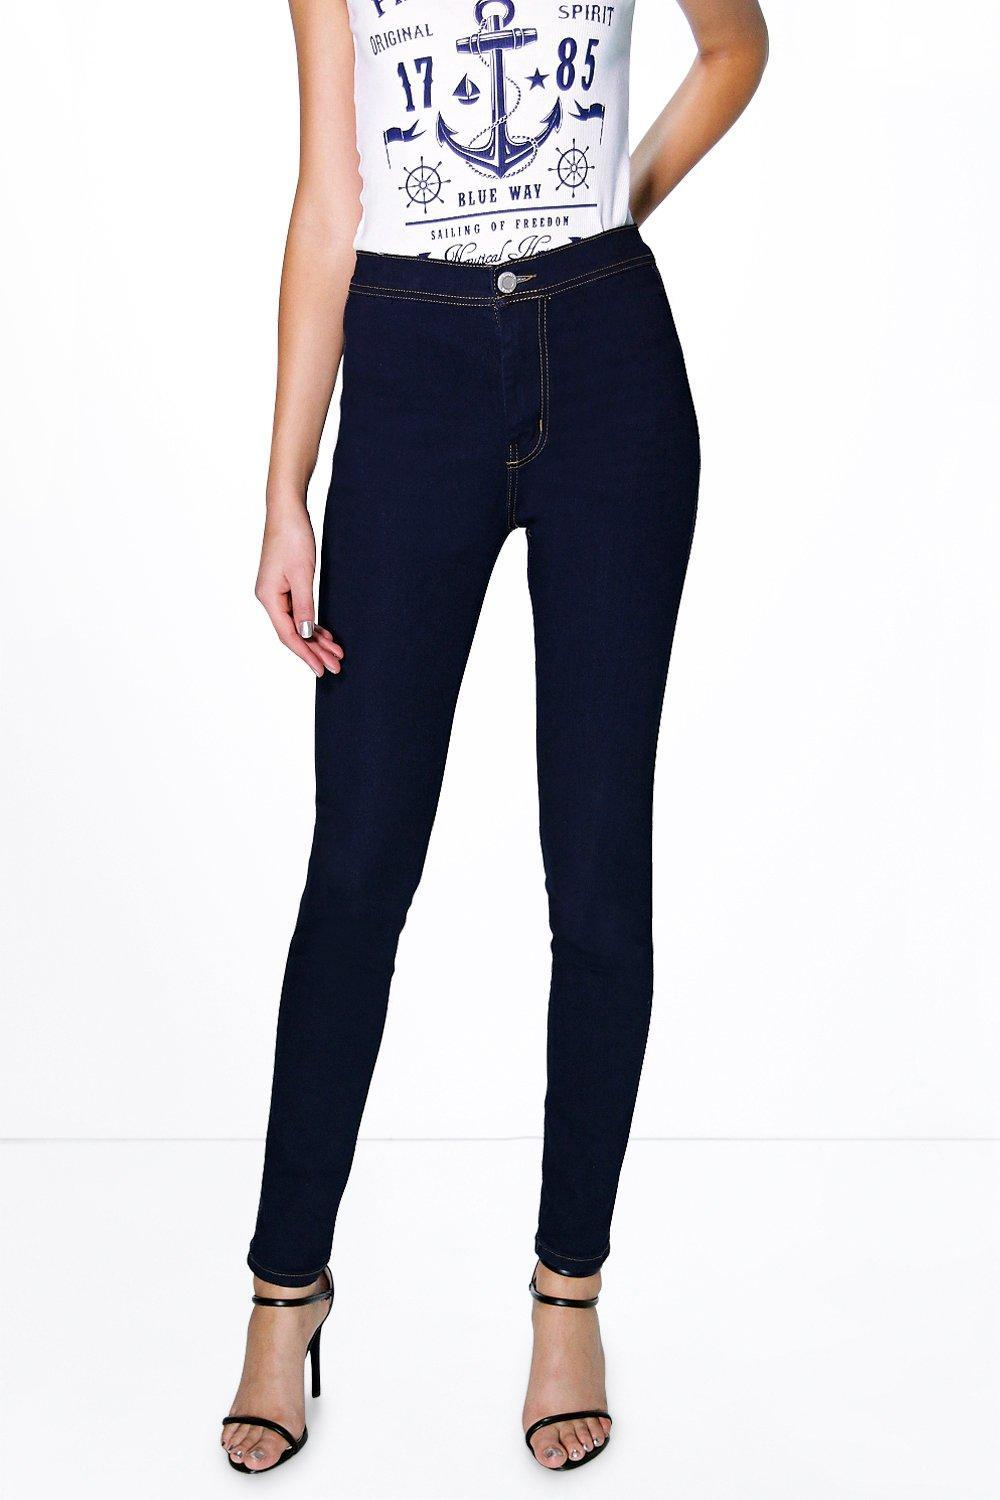 Narla High Waisted Skinny Tube Jeans Indigo - style: skinny leg; length: standard; pattern: plain; waist: high rise; pocket detail: traditional 5 pocket; predominant colour: navy; occasions: casual; fibres: cotton - stretch; jeans detail: dark wash; texture group: denim; pattern type: fabric; season: s/s 2016; wardrobe: basic